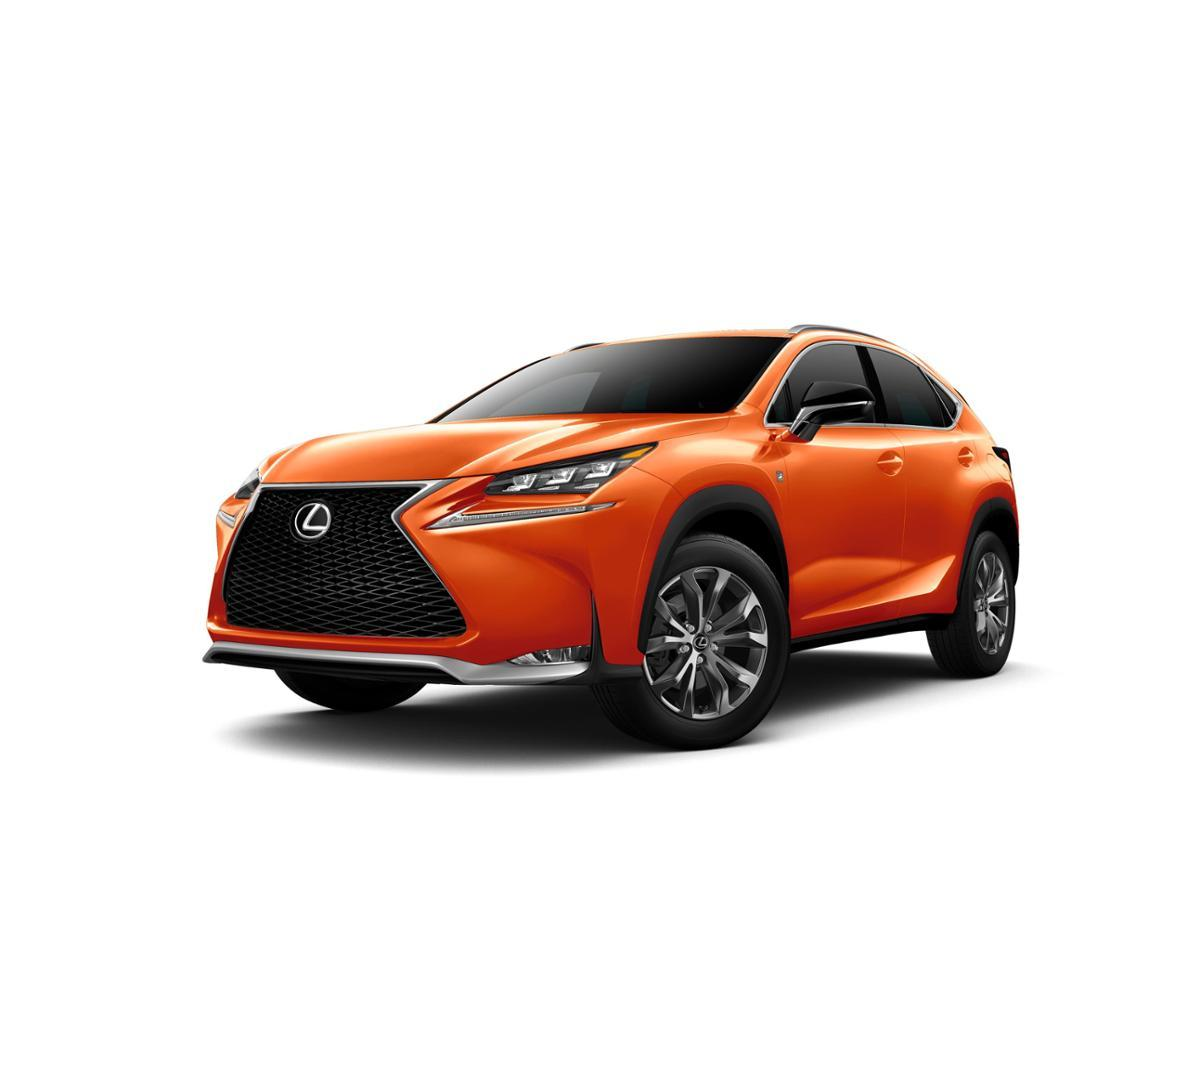 2017 lexus nx turbo for sale in woodland hills jtjyarbz3h2060612 lexus of woodland hills. Black Bedroom Furniture Sets. Home Design Ideas